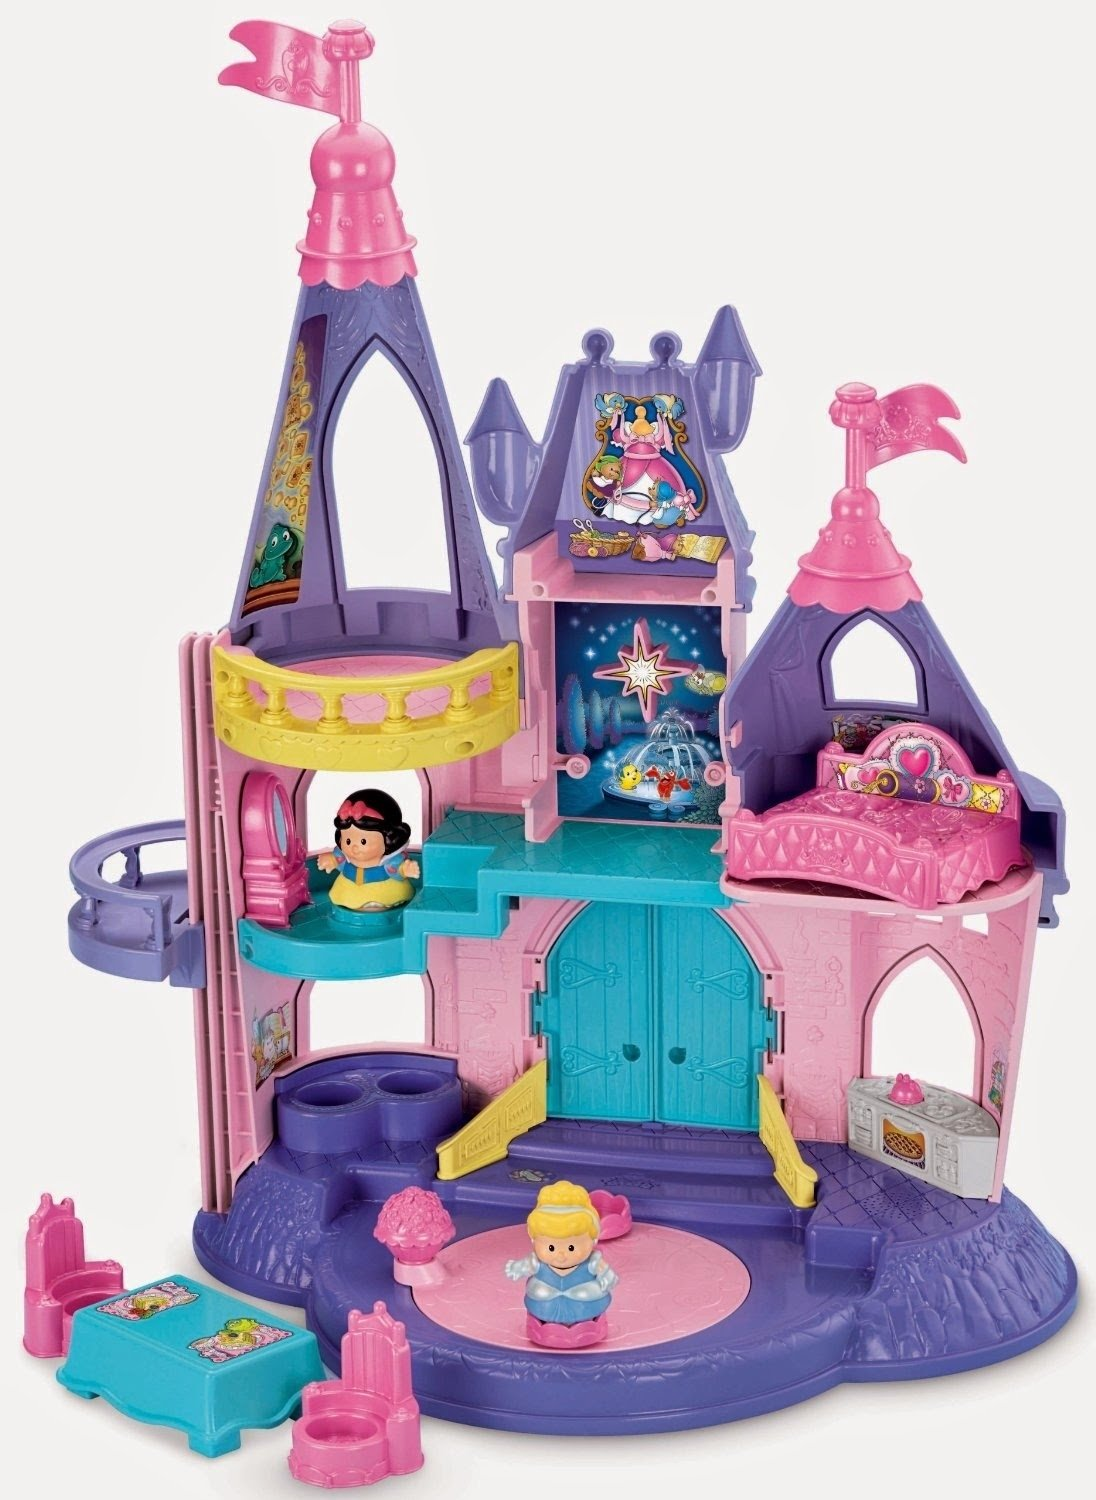 10 Most Recommended Gift Ideas 2 Year Old Girl toddler approved favorite gifts for 2 year olds 2020